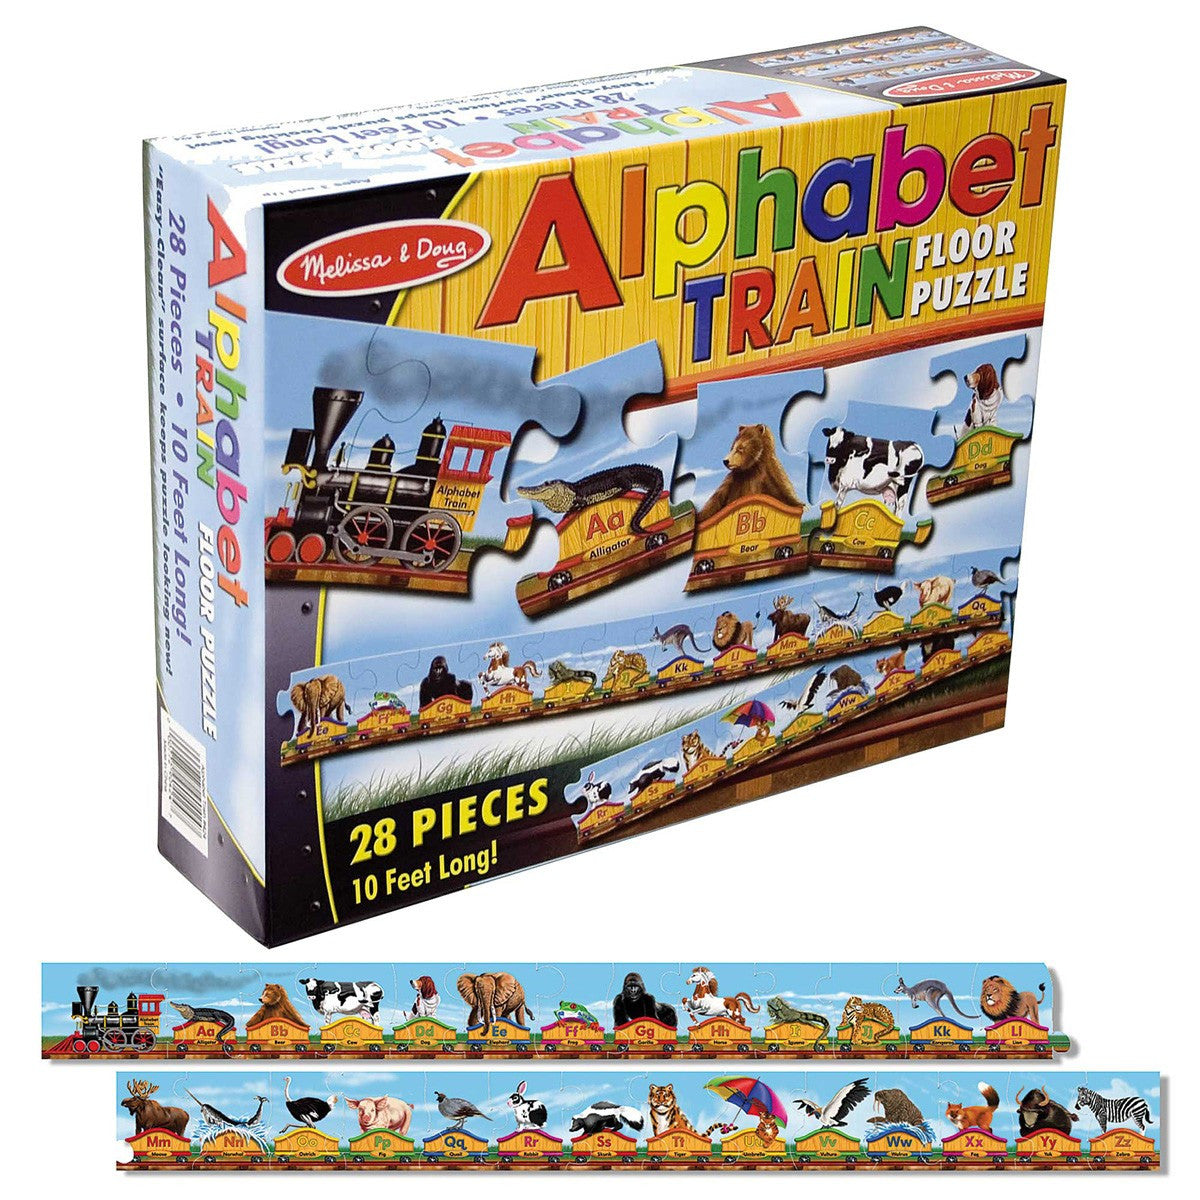 31. Alphabet Train Floor Puzzle (Age 3 Years+)